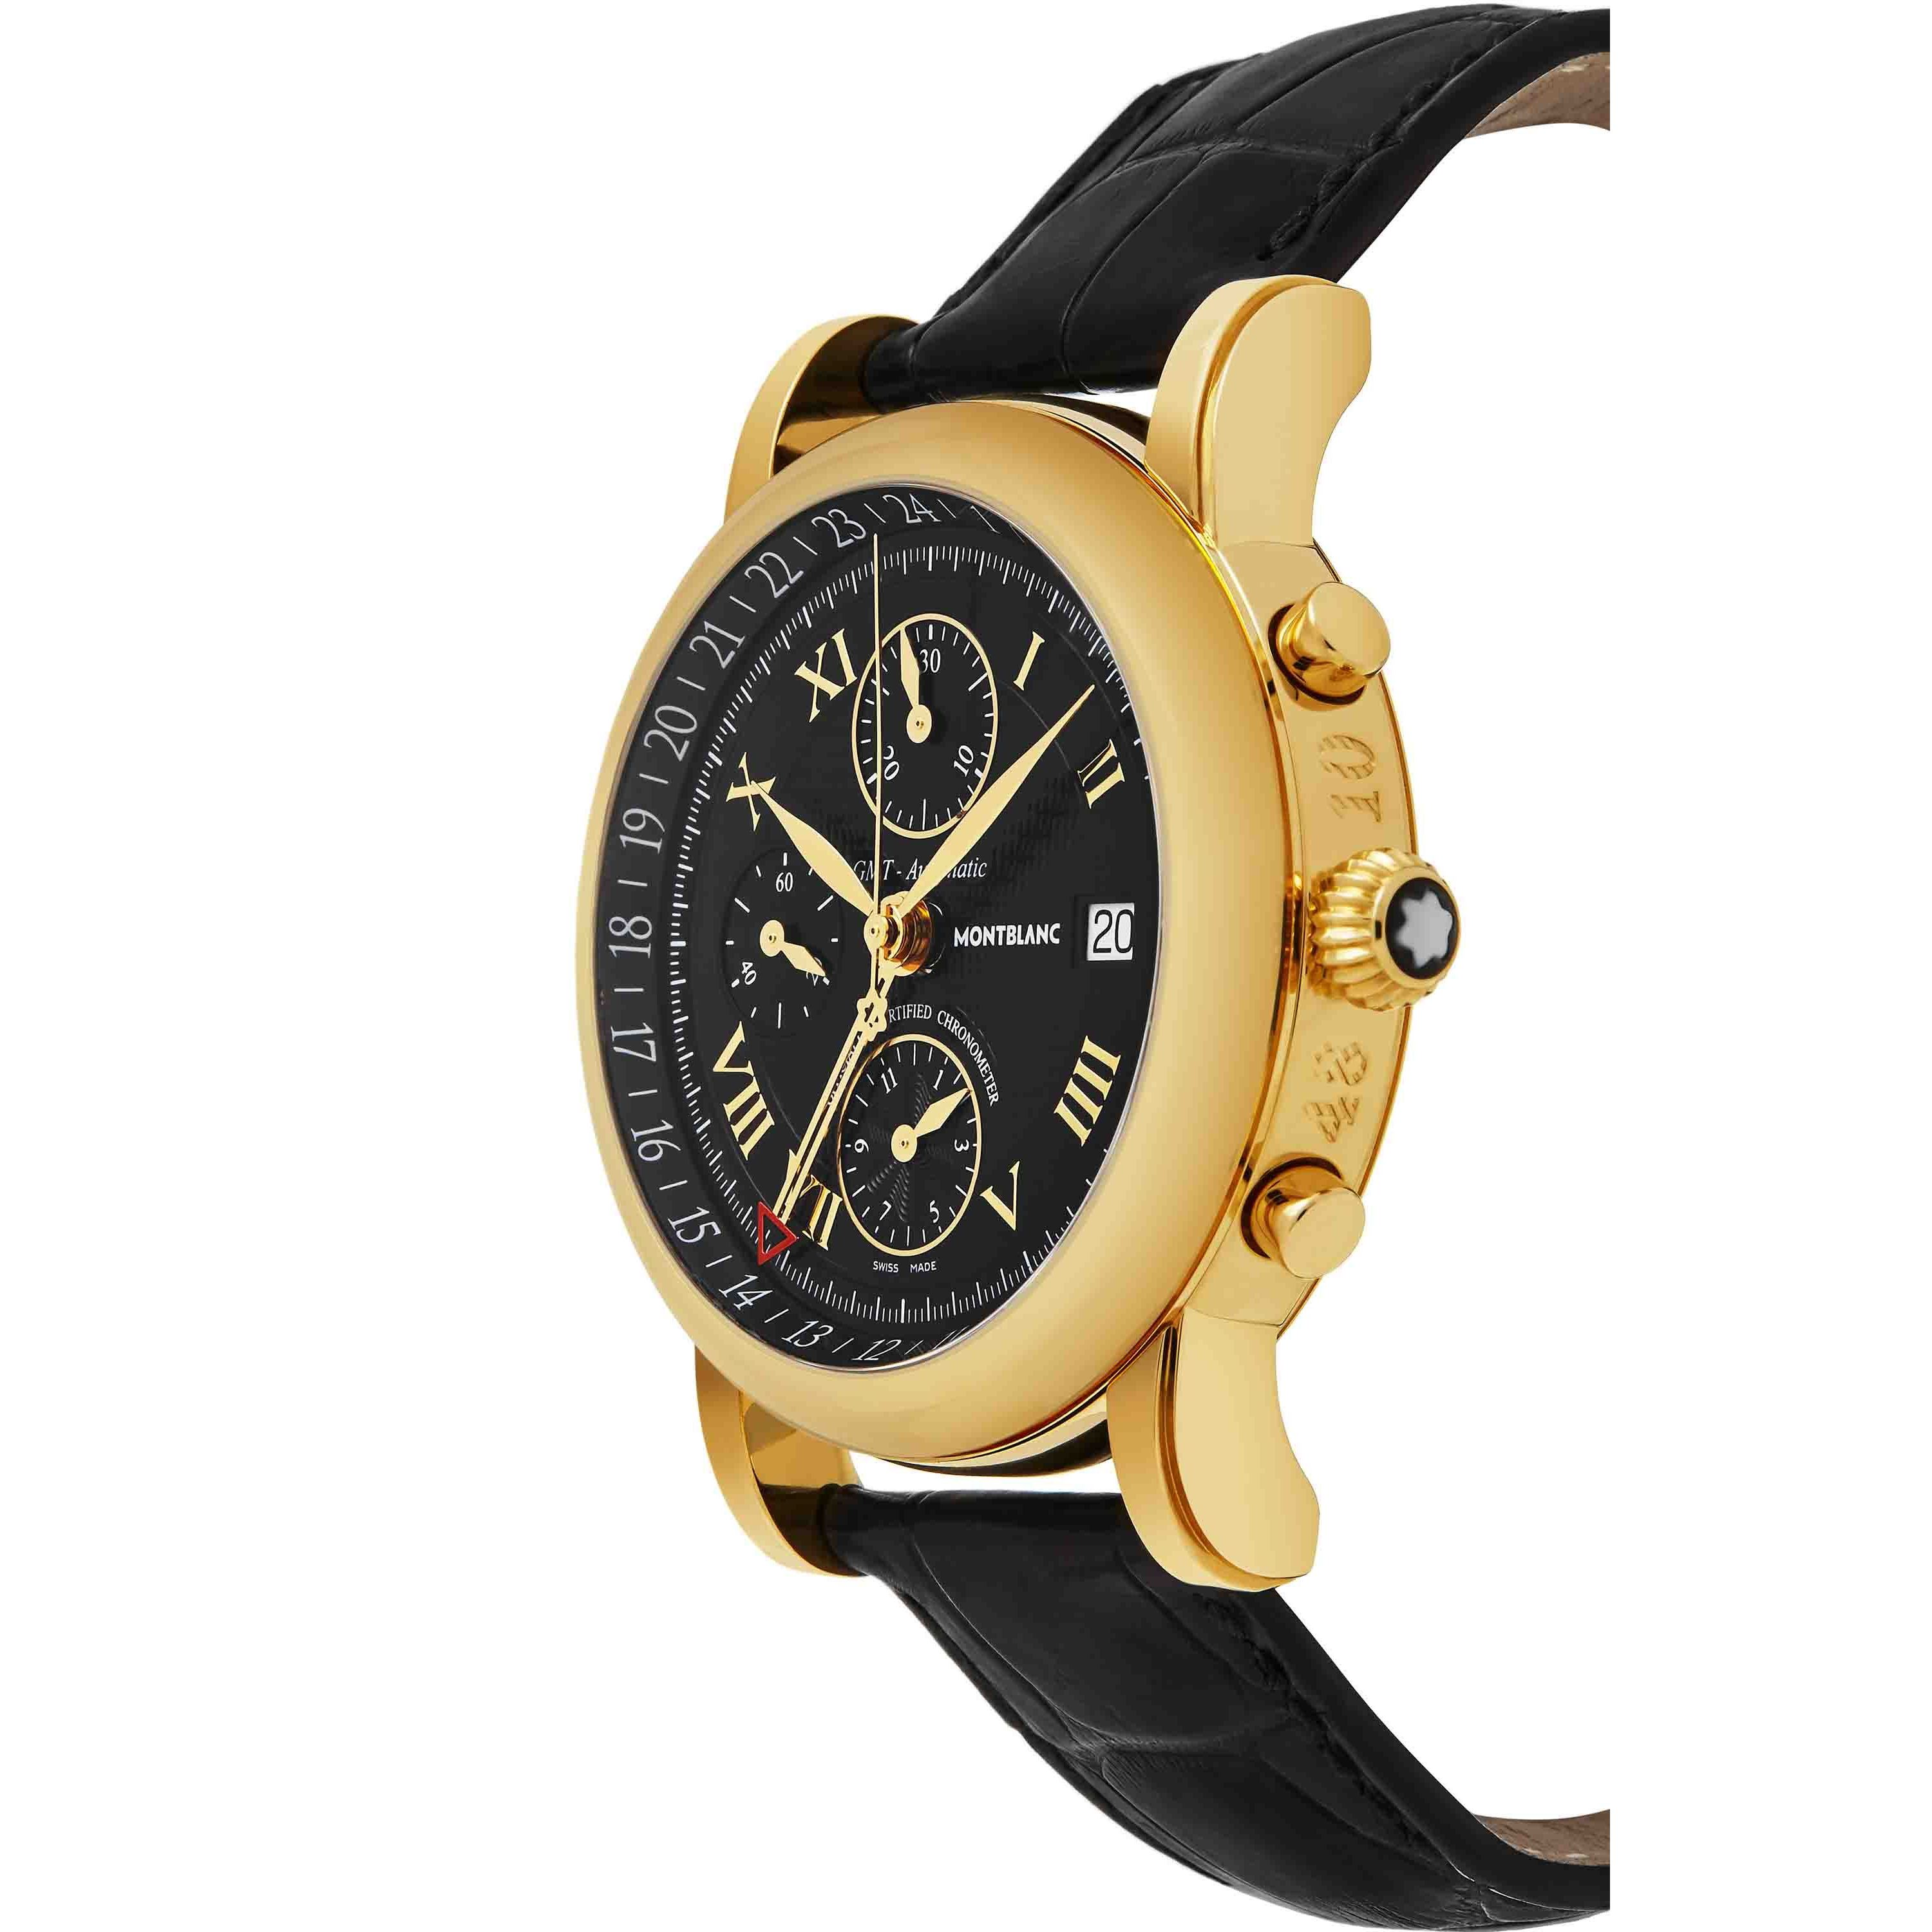 8116664ad63 Shop Mont Blanc Men's 'Star' Black Dial Black Leather Strap Yellow Gold  Chronograph Swiss Automatic Watch - Free Shipping Today - Overstock -  12468848